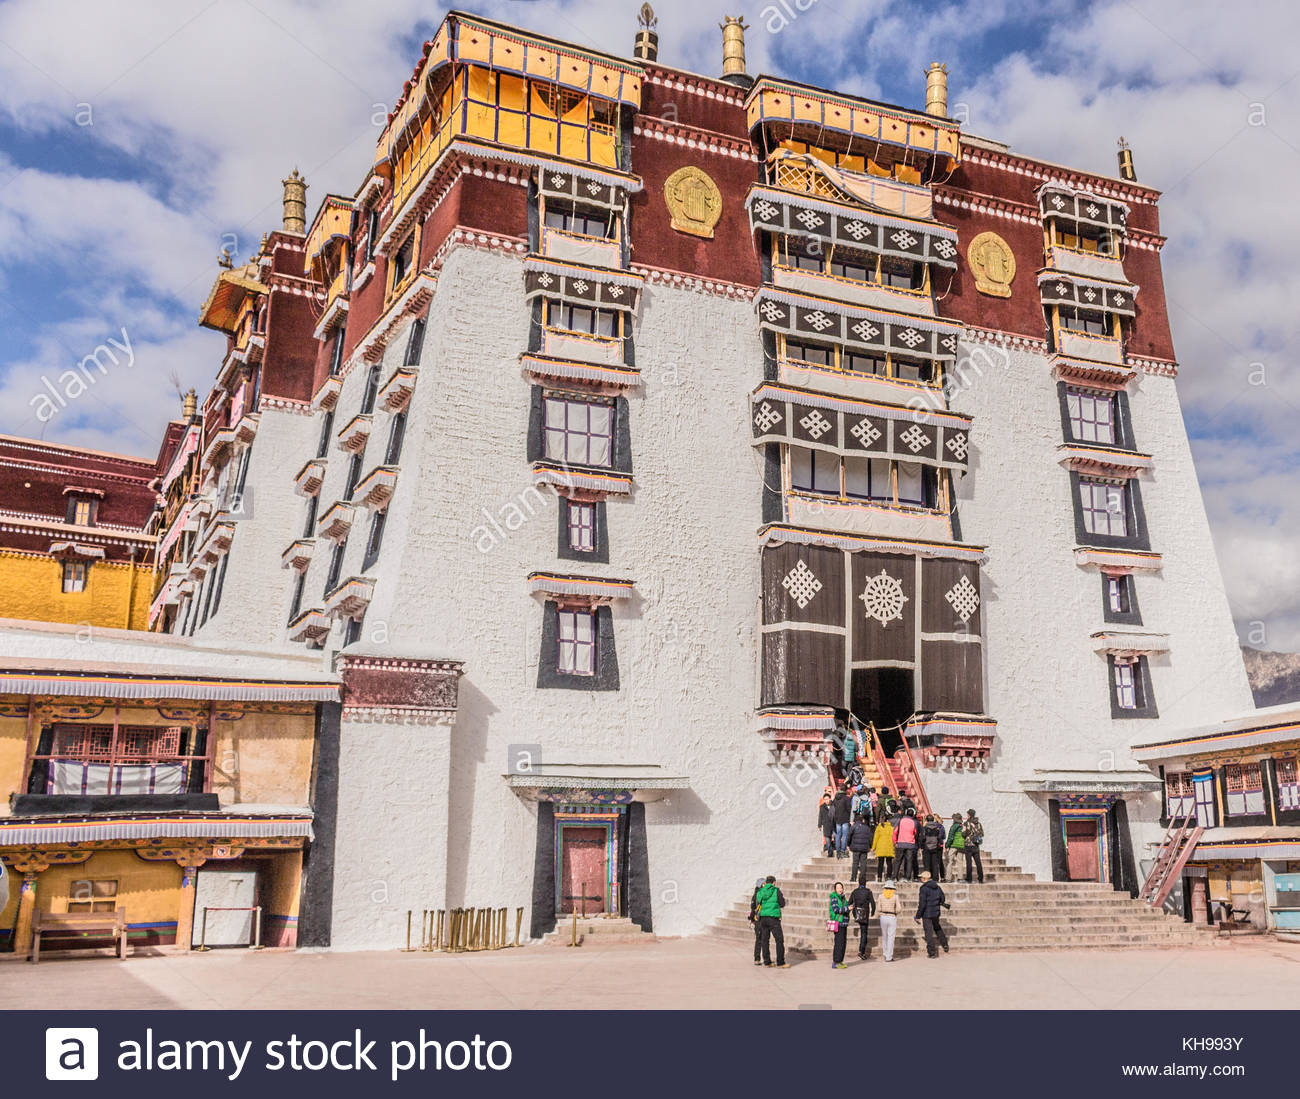 The White Palace inside the Potala Palace in Lhasa Tibet - this was the living quarters of the Dalai Lama - Stock Image